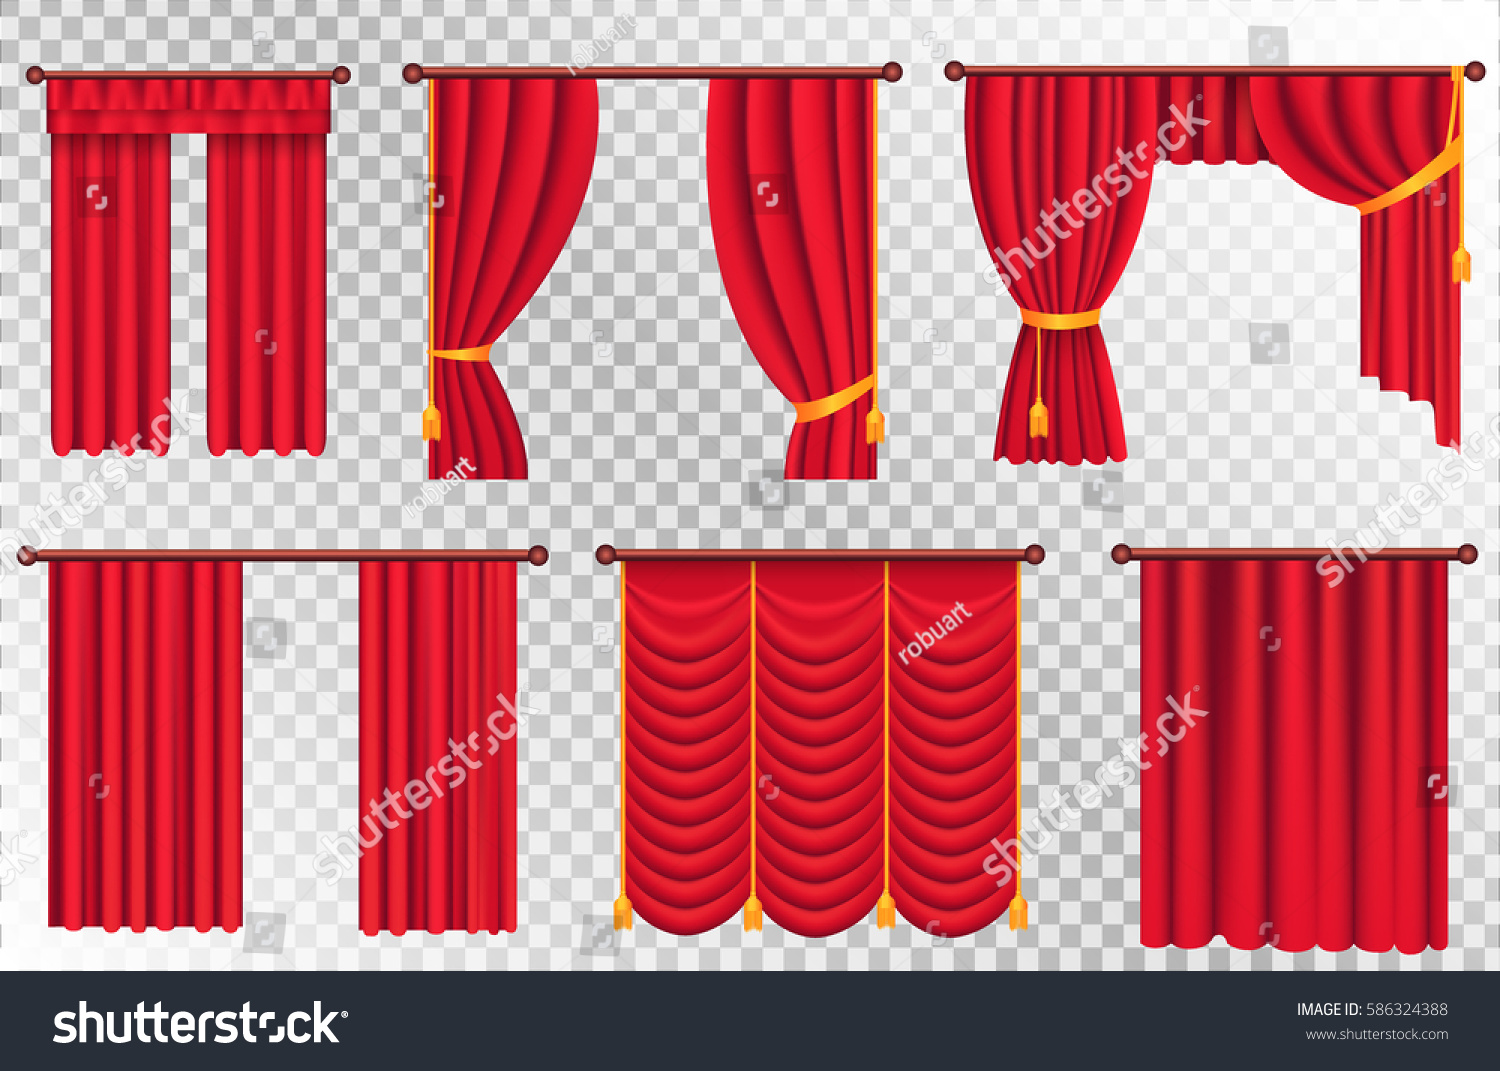 silk fabric into and drapes window made upton nina curtains arch windows blinds arched images on pinterest luxury campbell statement ninacampbellltd best